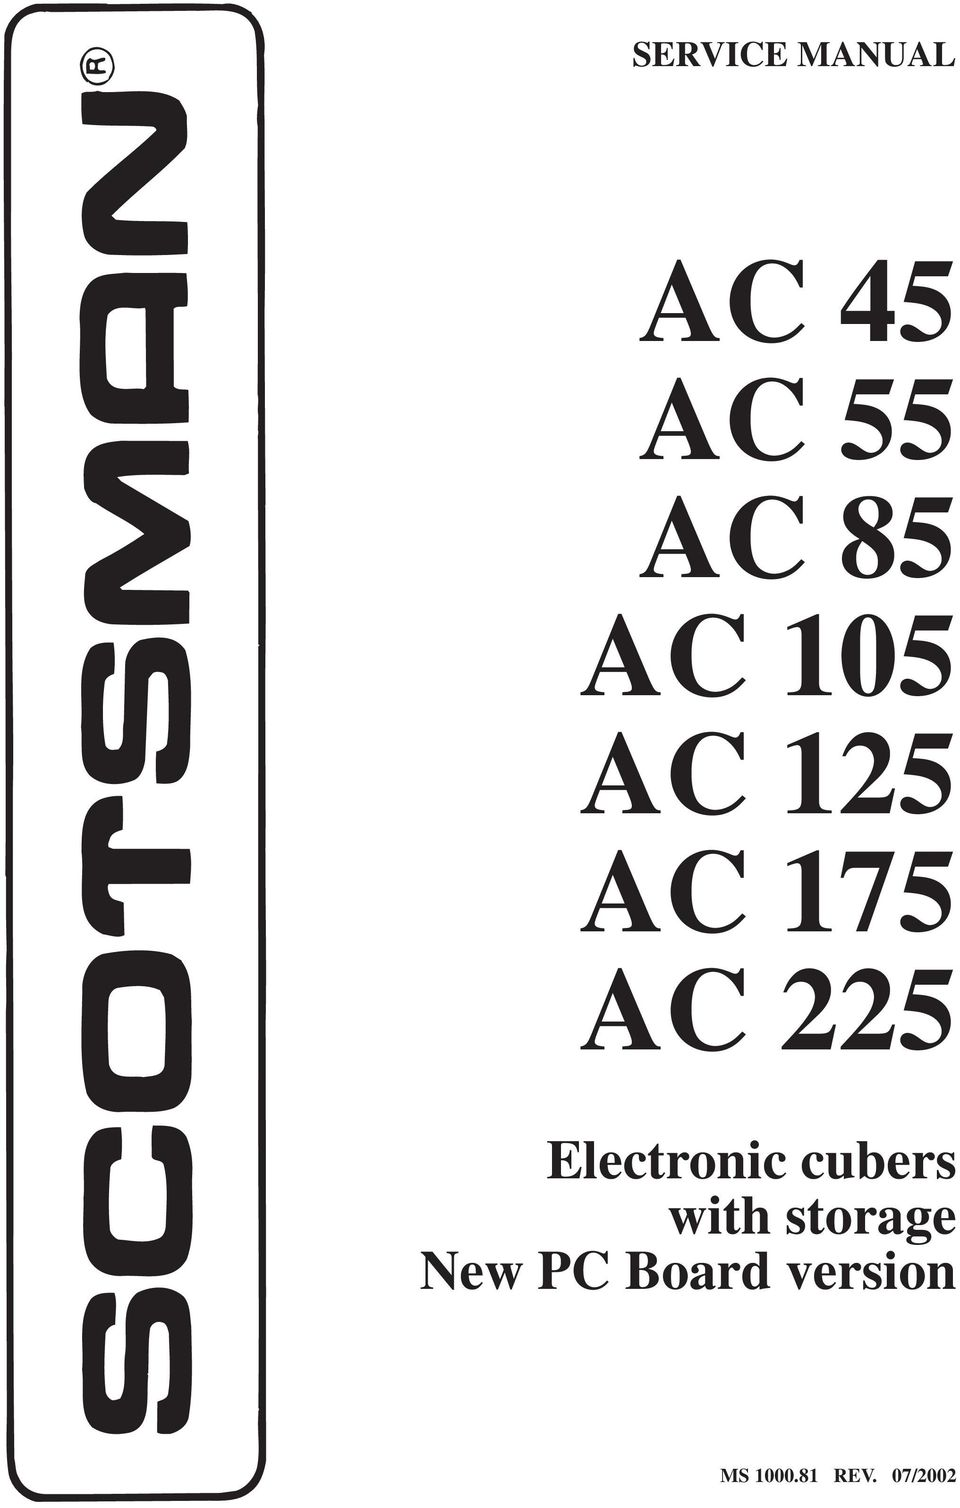 Ac 45 55 85 105 125 175 Pdf Ice O Matic Wiring Diagram 225 Electronic Cubers With Storage